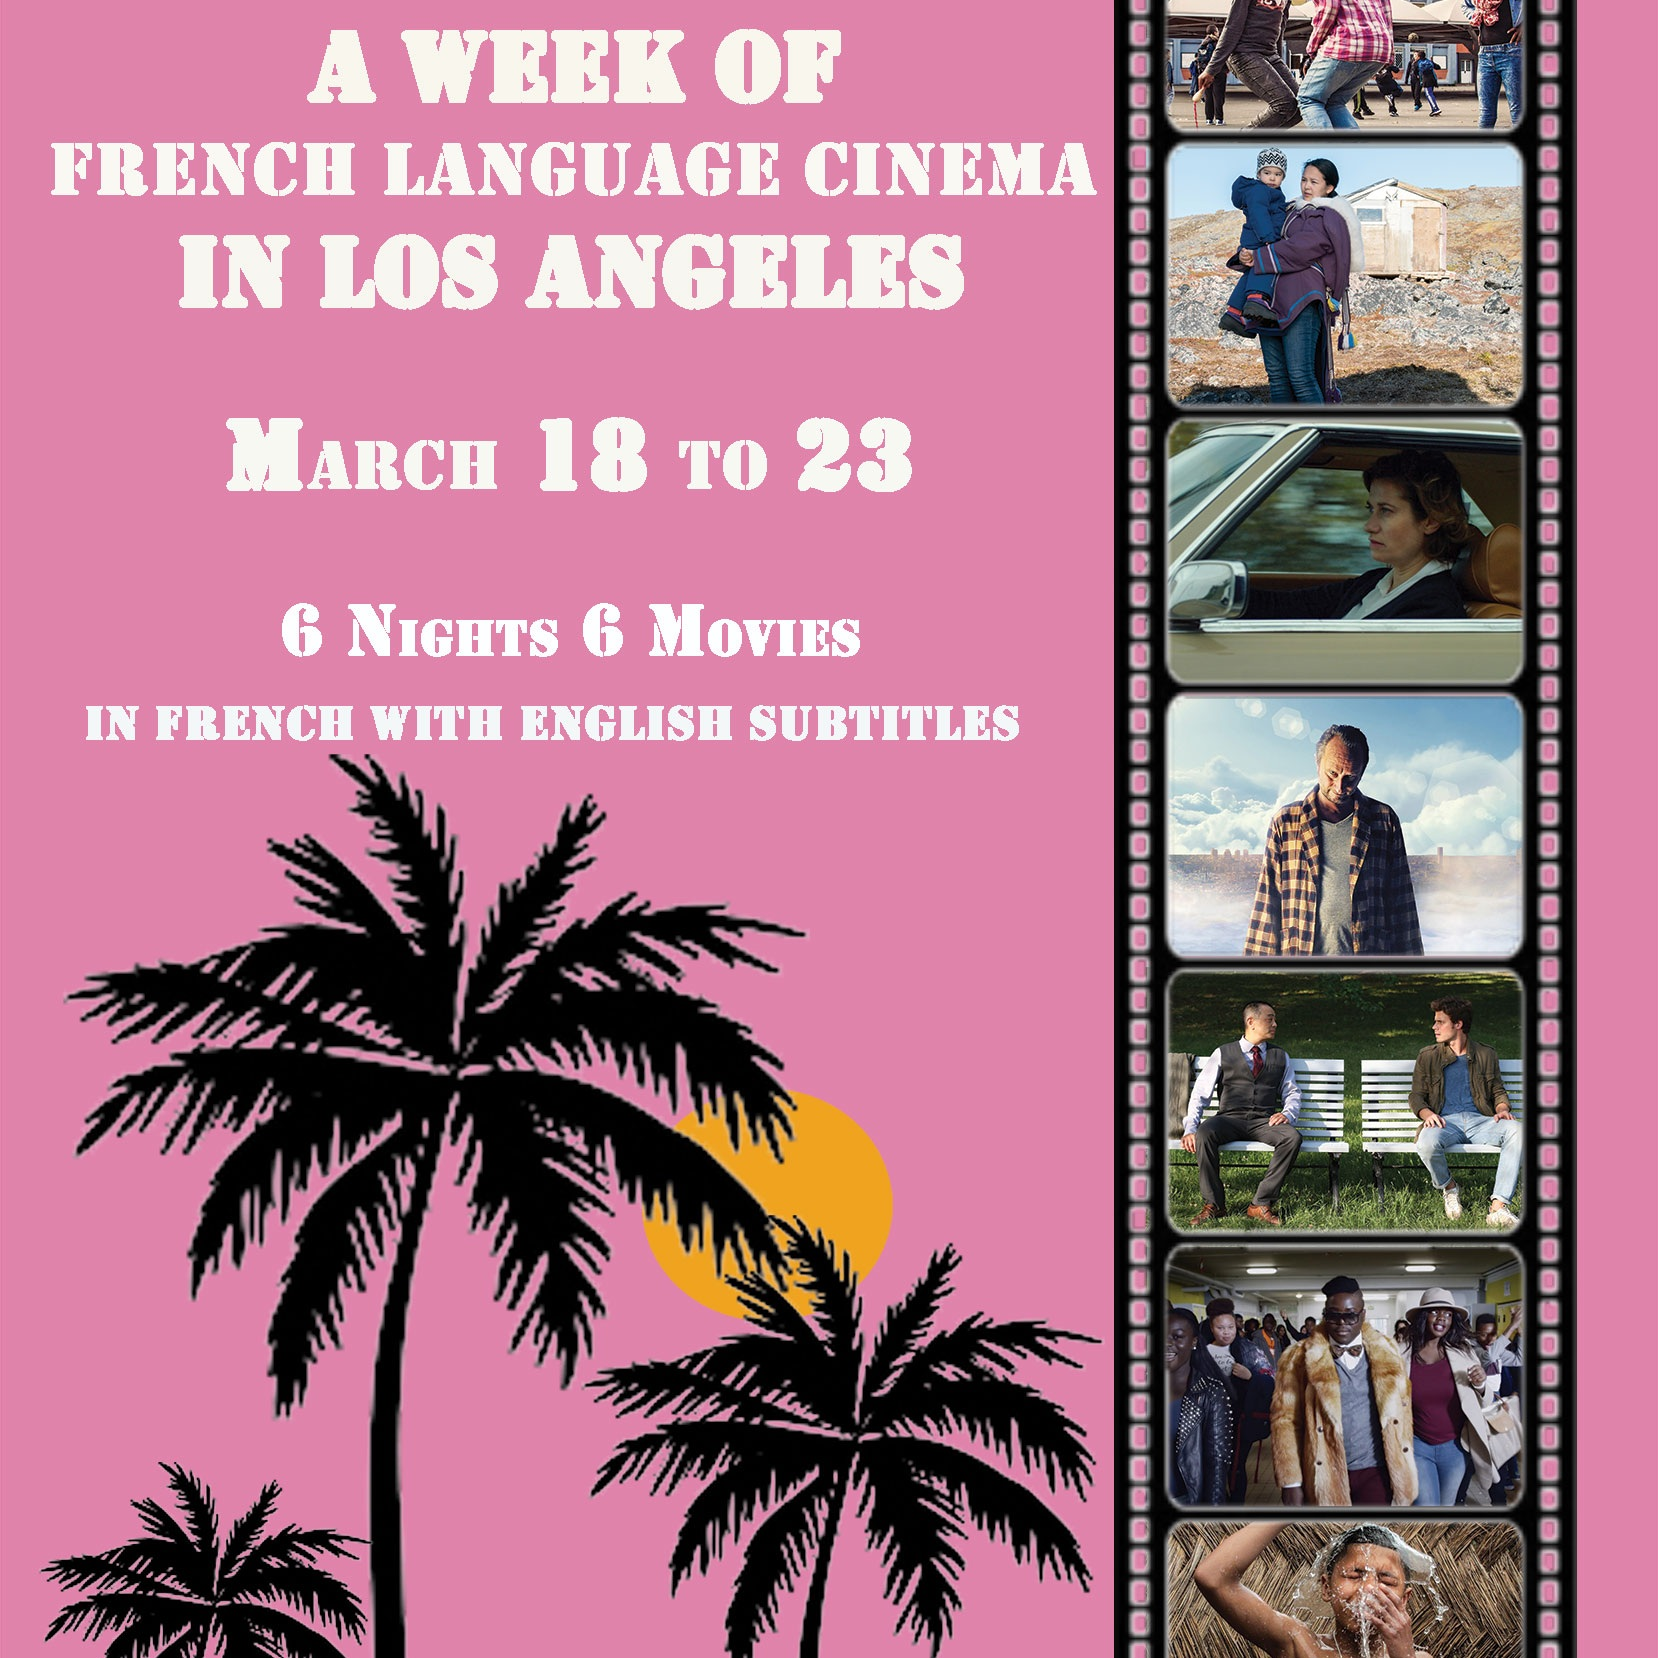 A Week Of French Language Cinema In Los Angeles